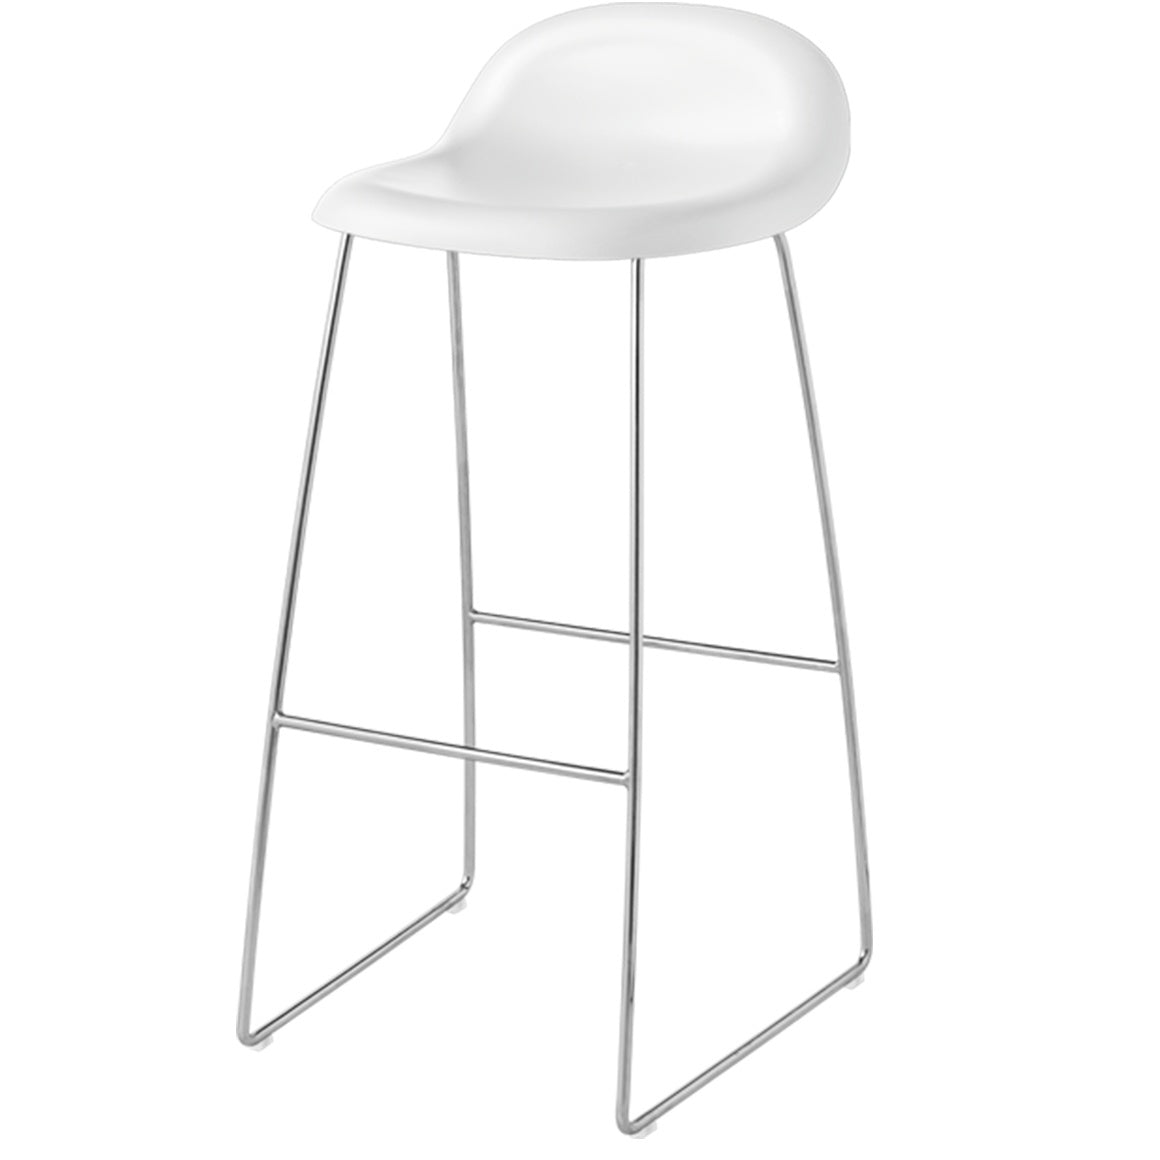 GUBI 3 STOOL-CHROME BASE - Eclectic Cool  - 5